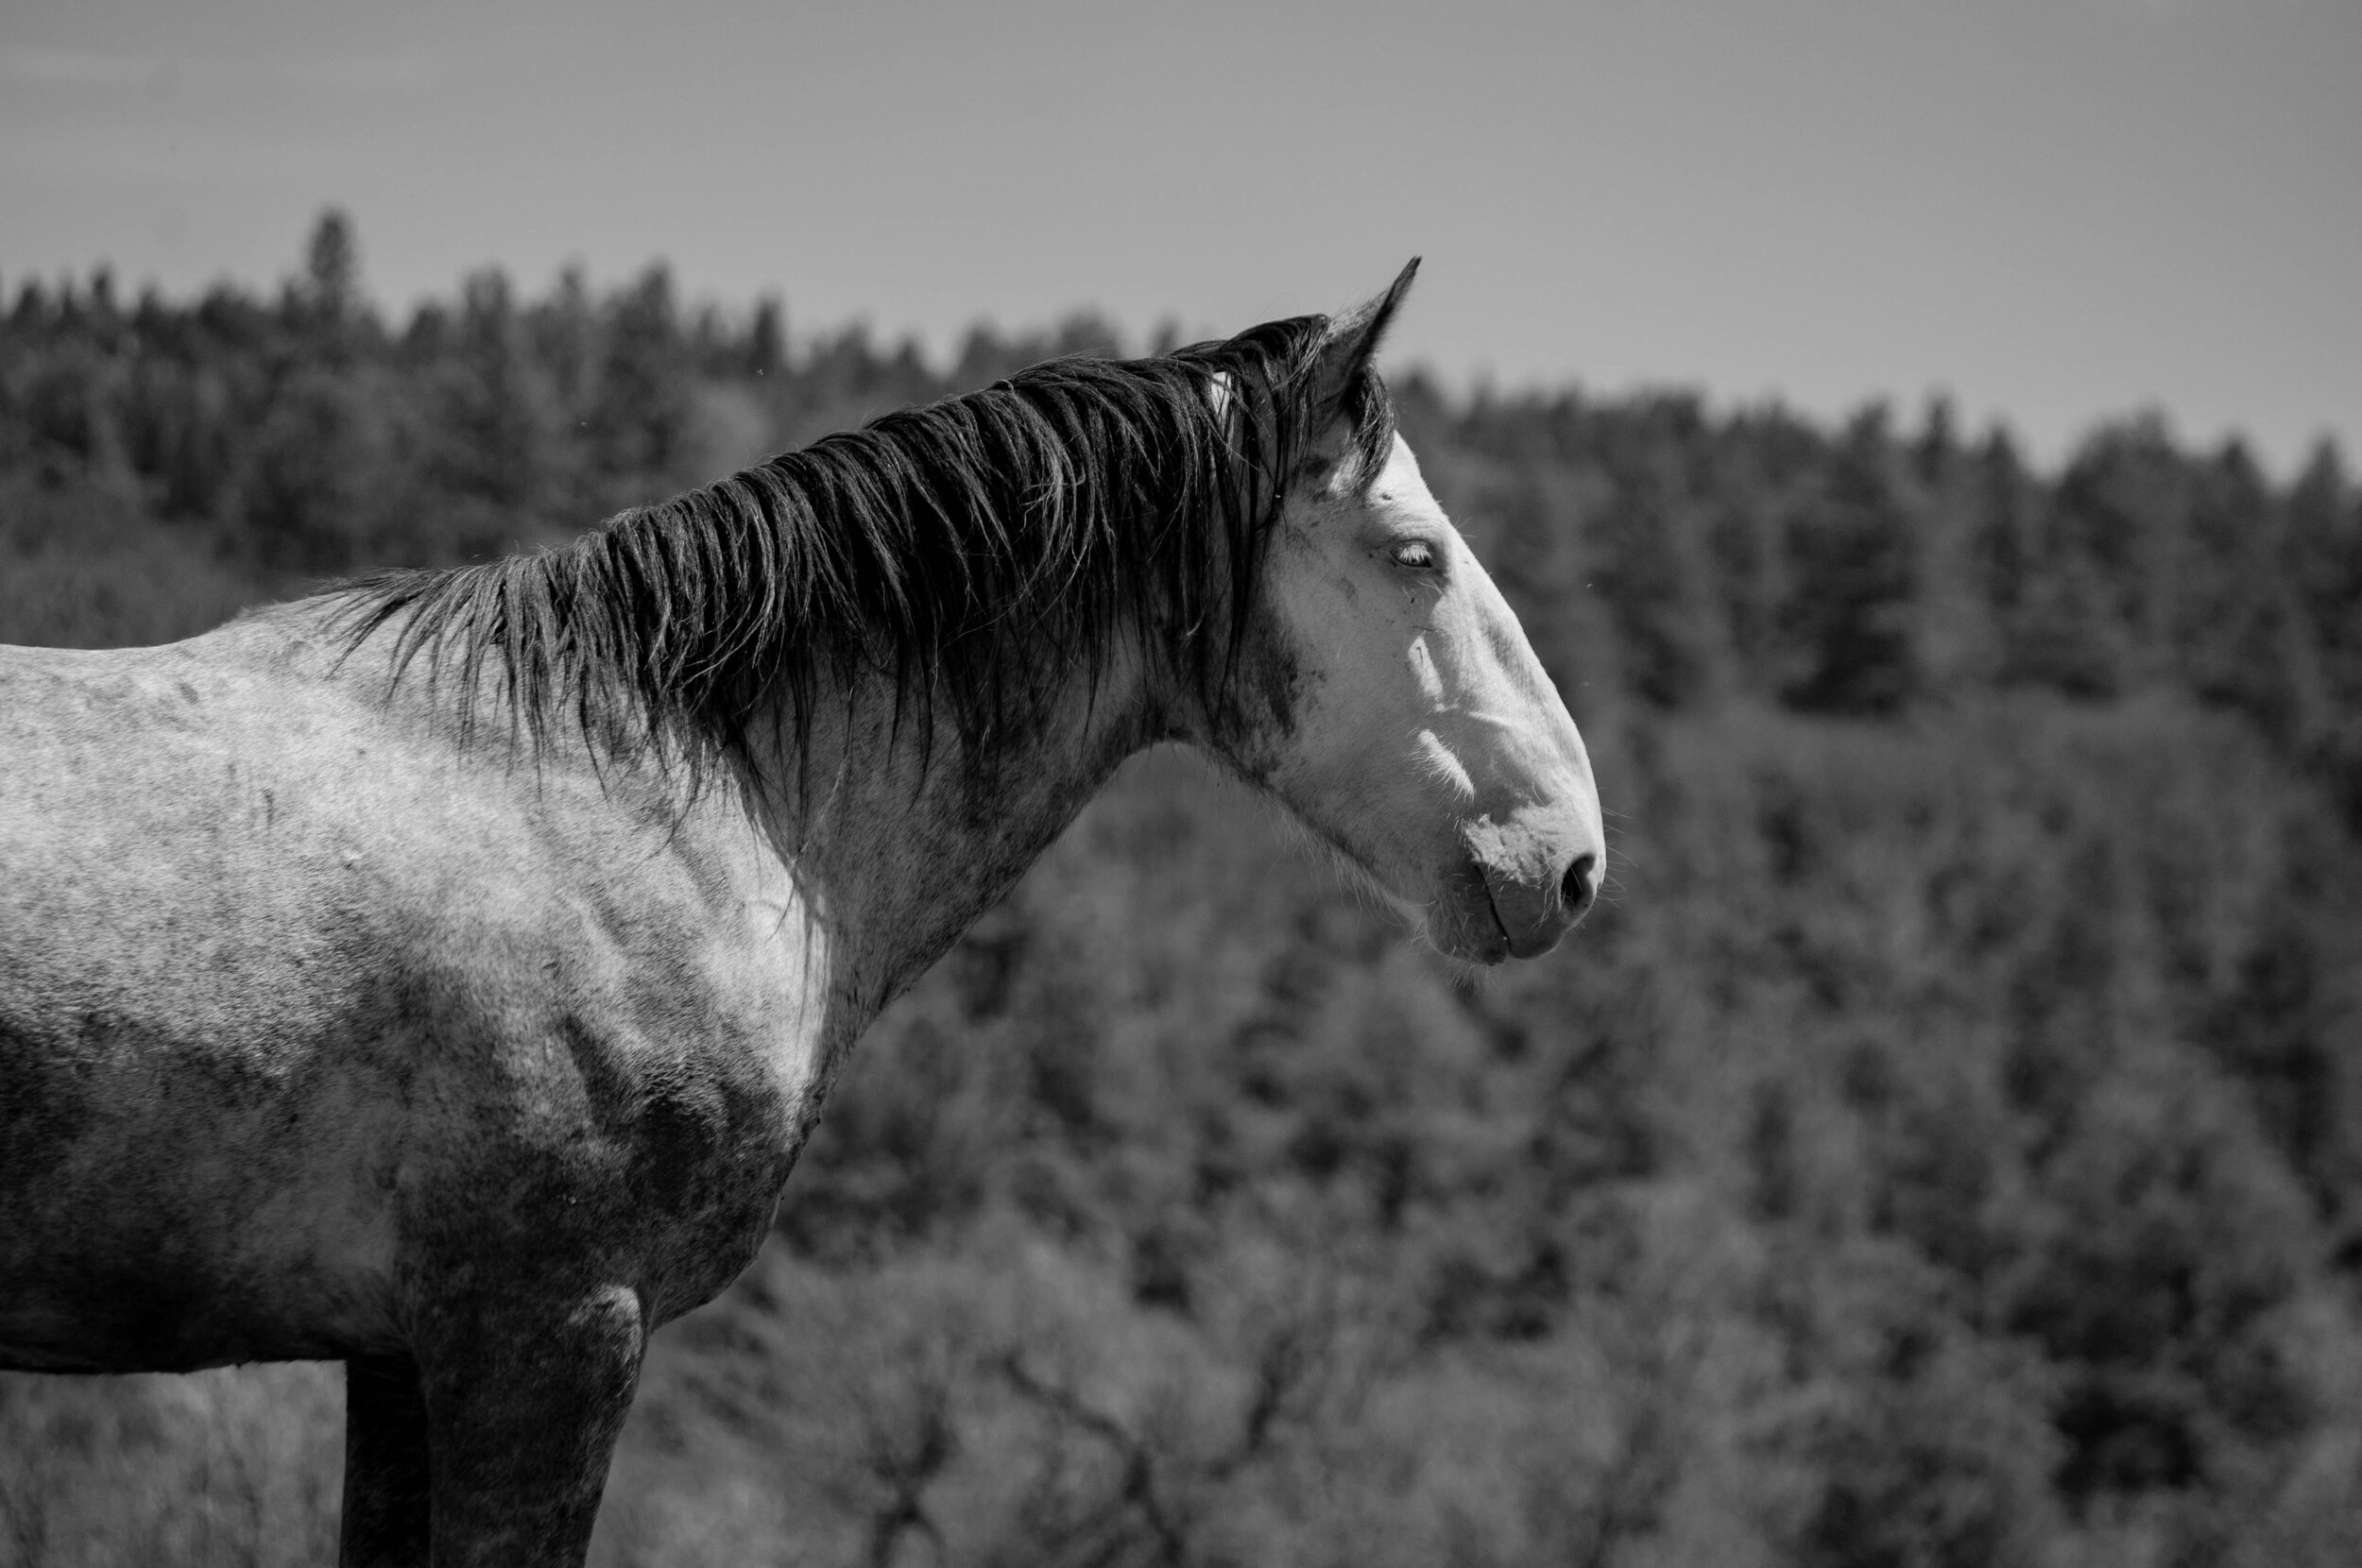 Why Wild Horses, Why Now? - Click to learn more